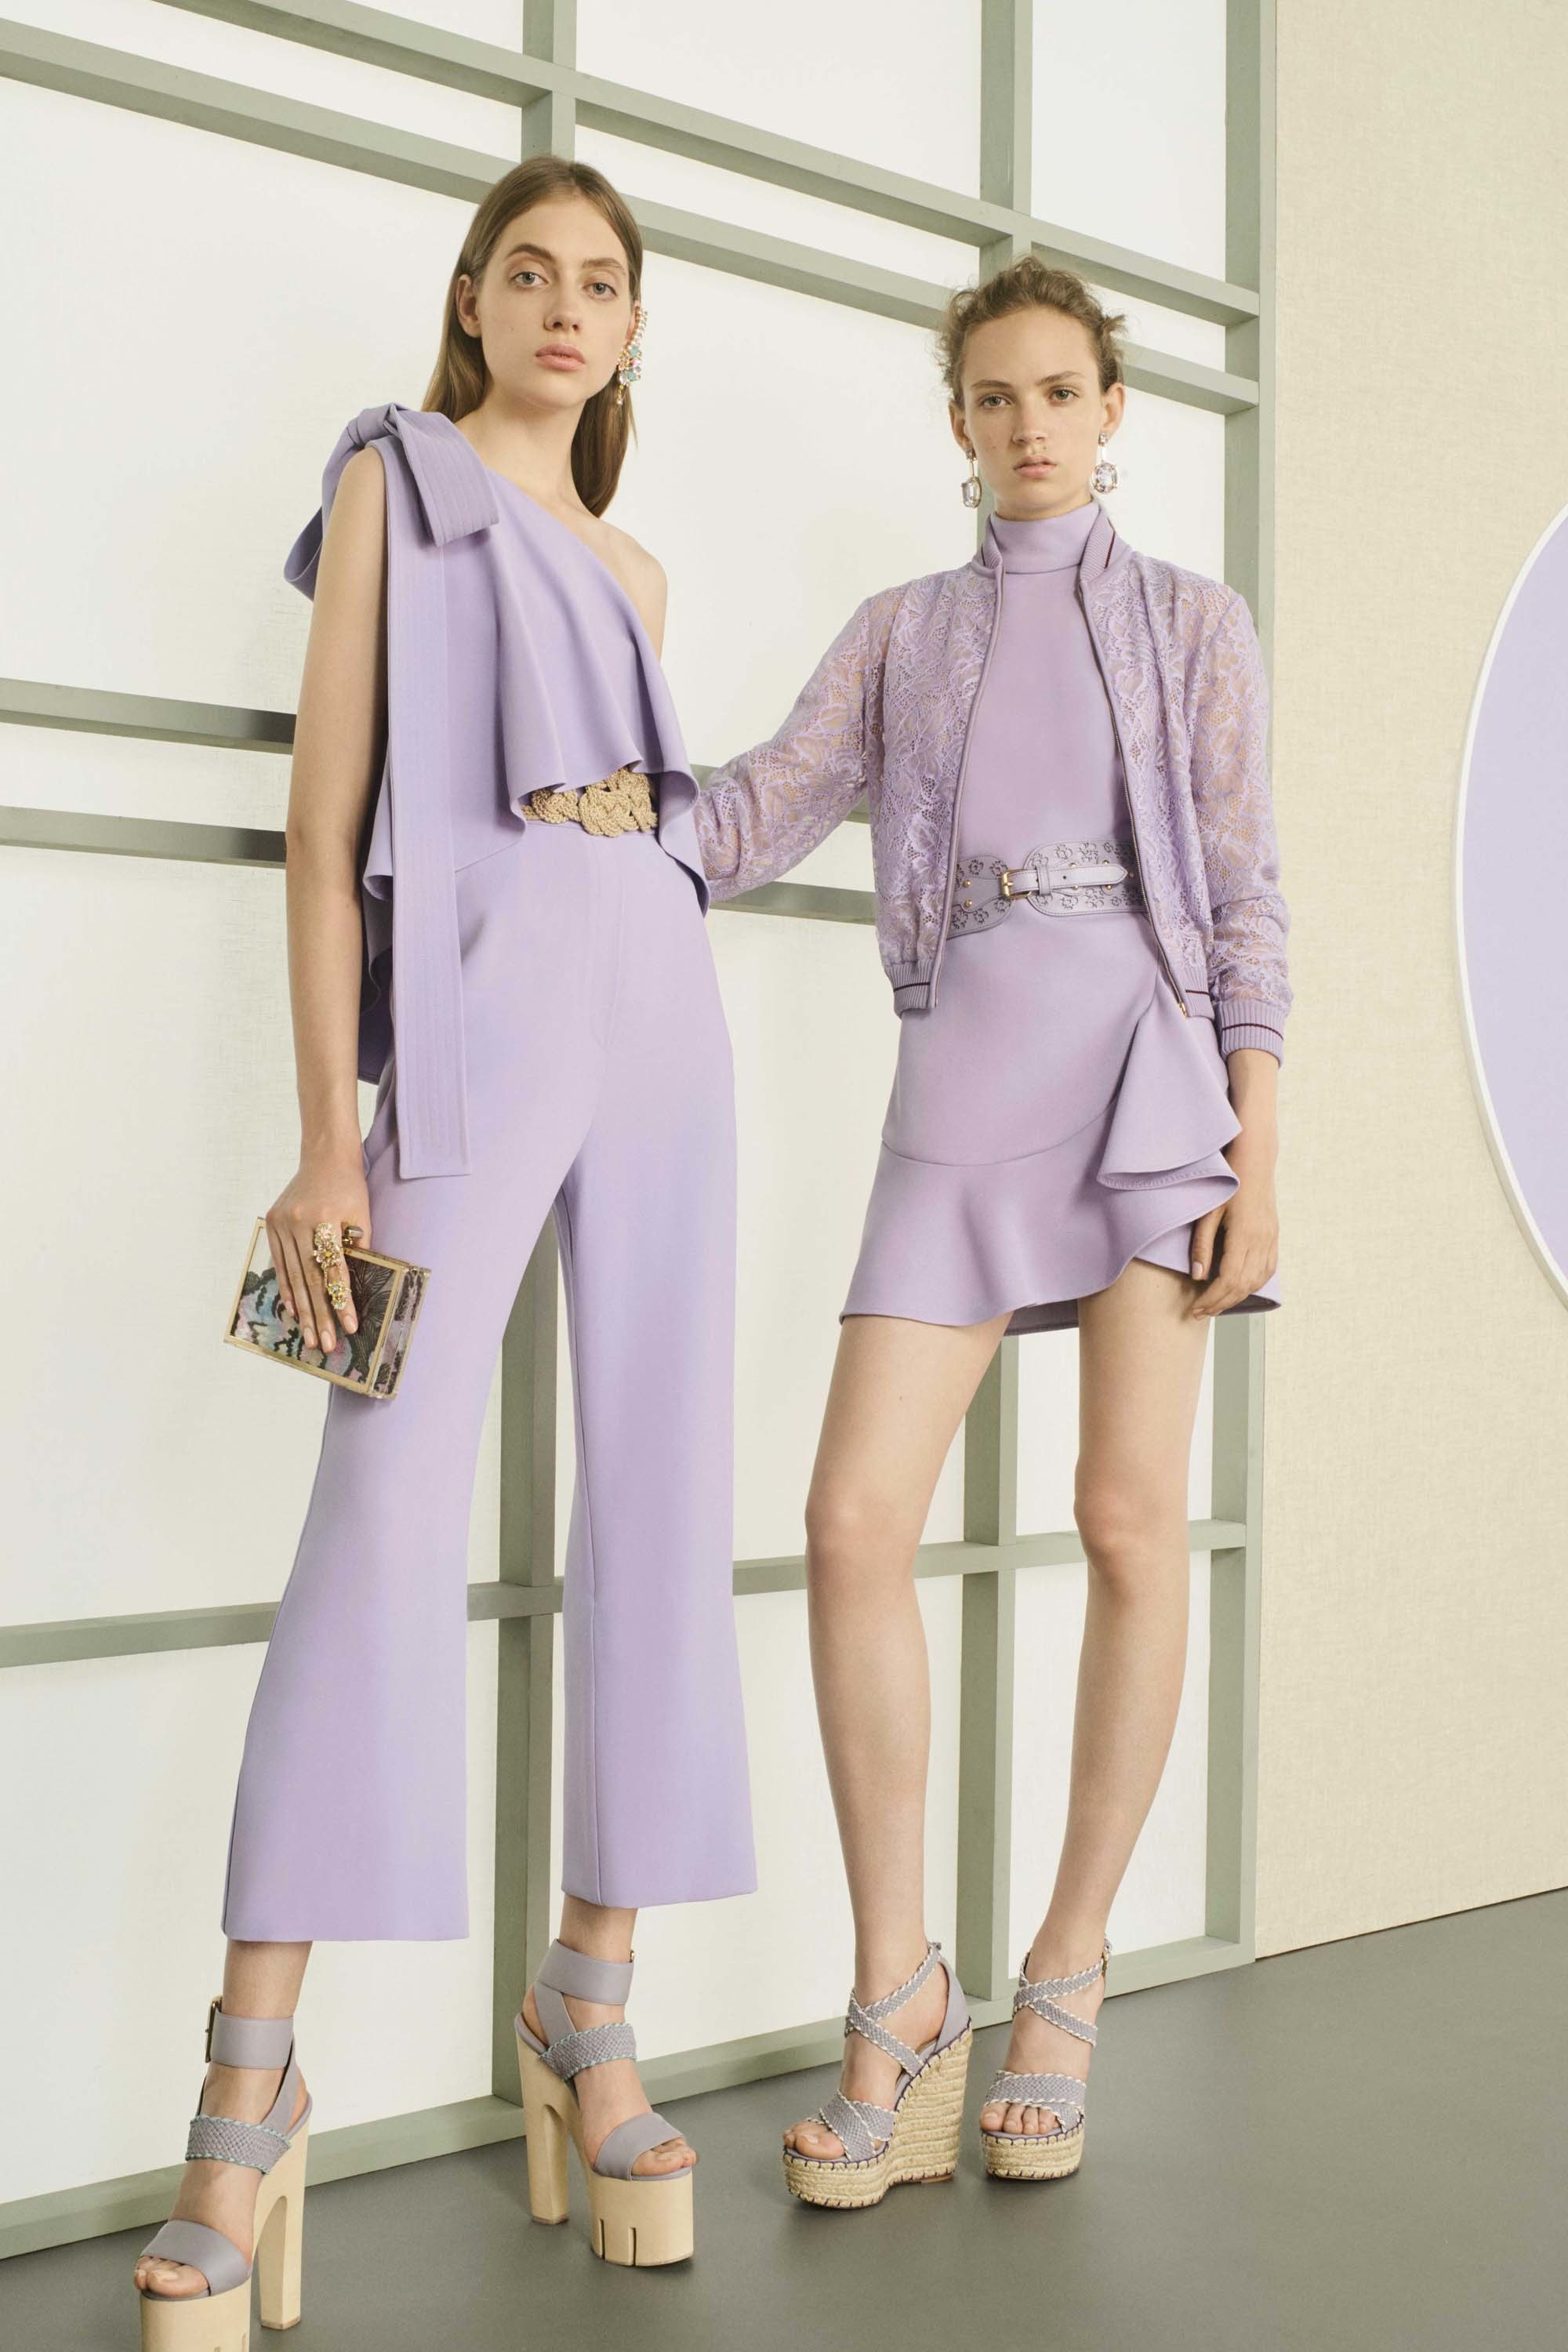 Elie Saab Resort 2017 - How to Style a Jumpsuit - Accessorizing a Jumpsuit - Source Elie Saab - lavender jumpsuits - capri jumpsuits - designer jumpsuits